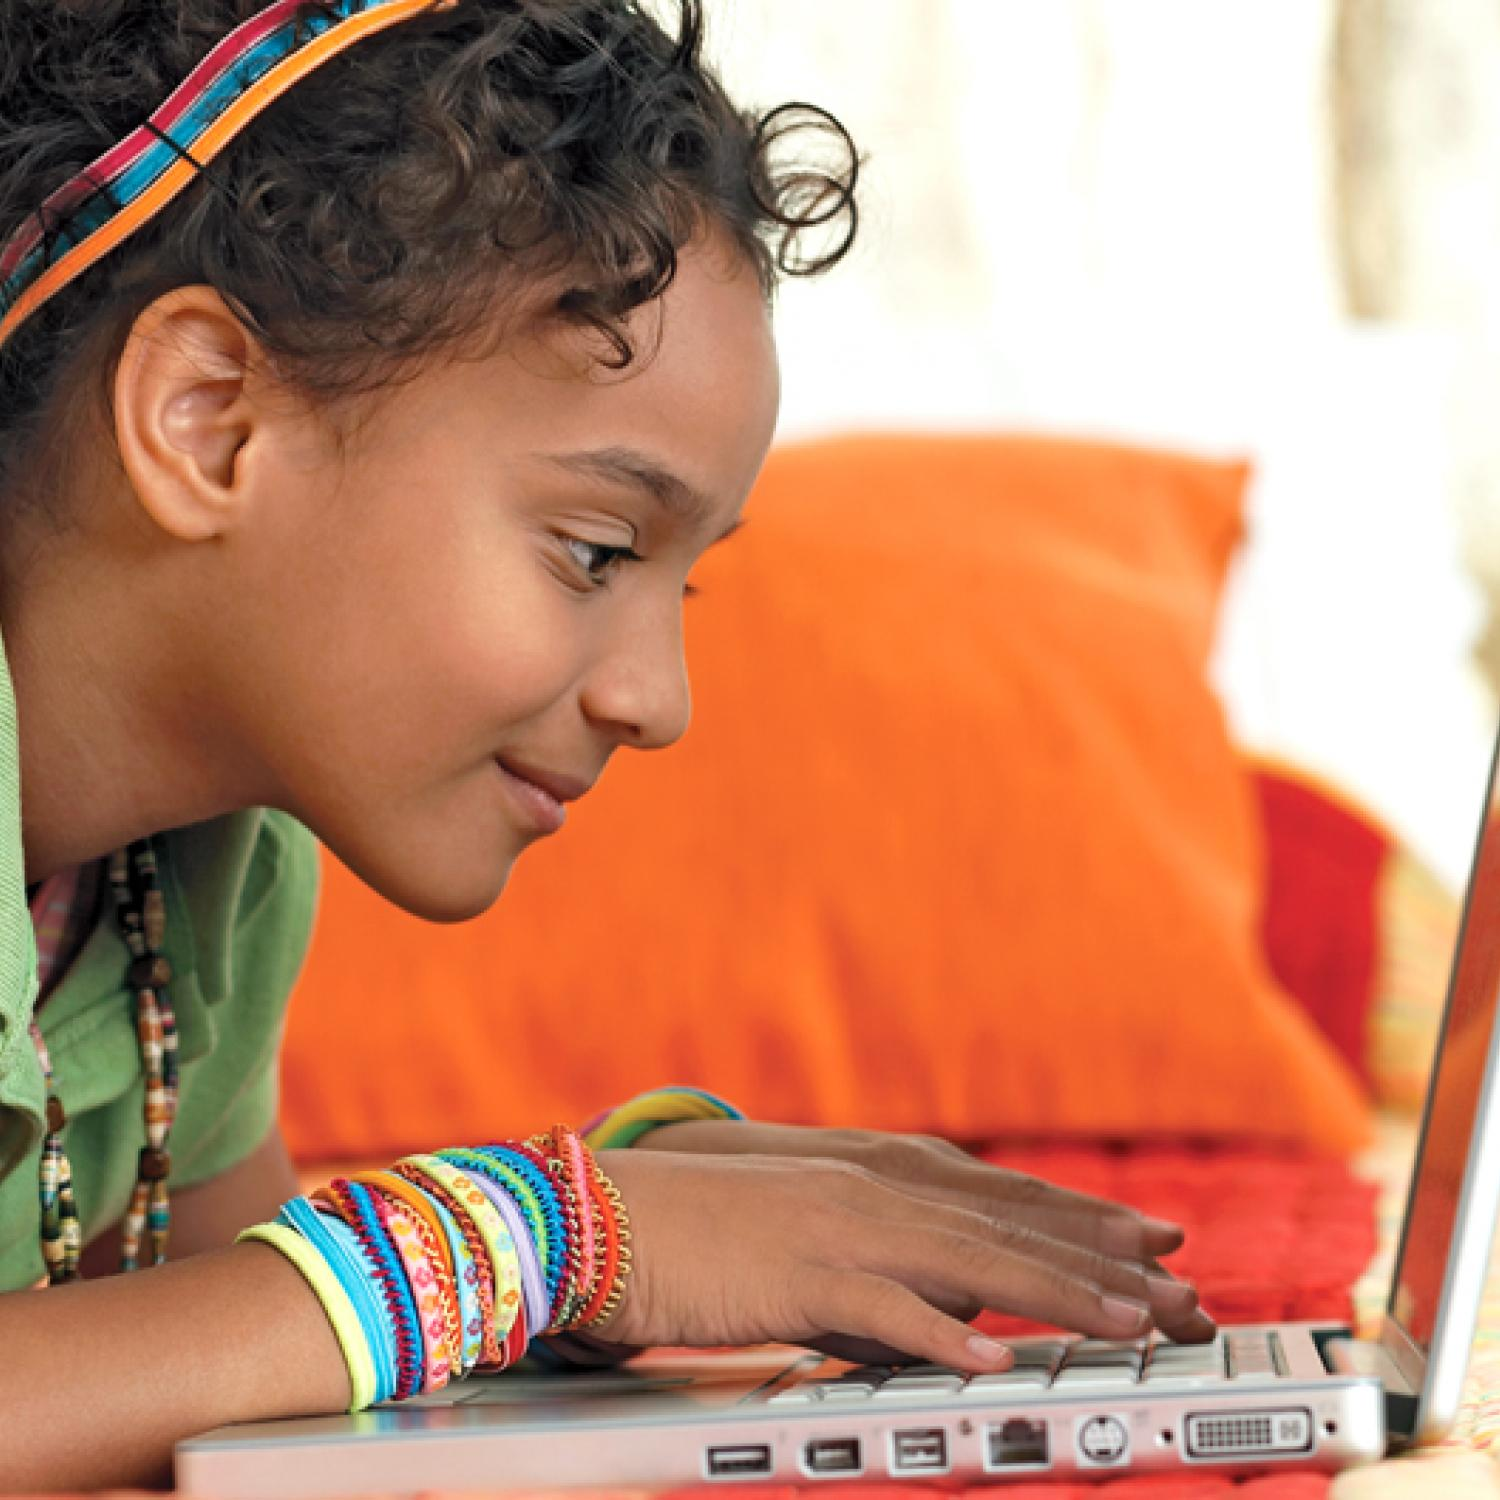 13 Tips for Monitoring Kids' Social Media